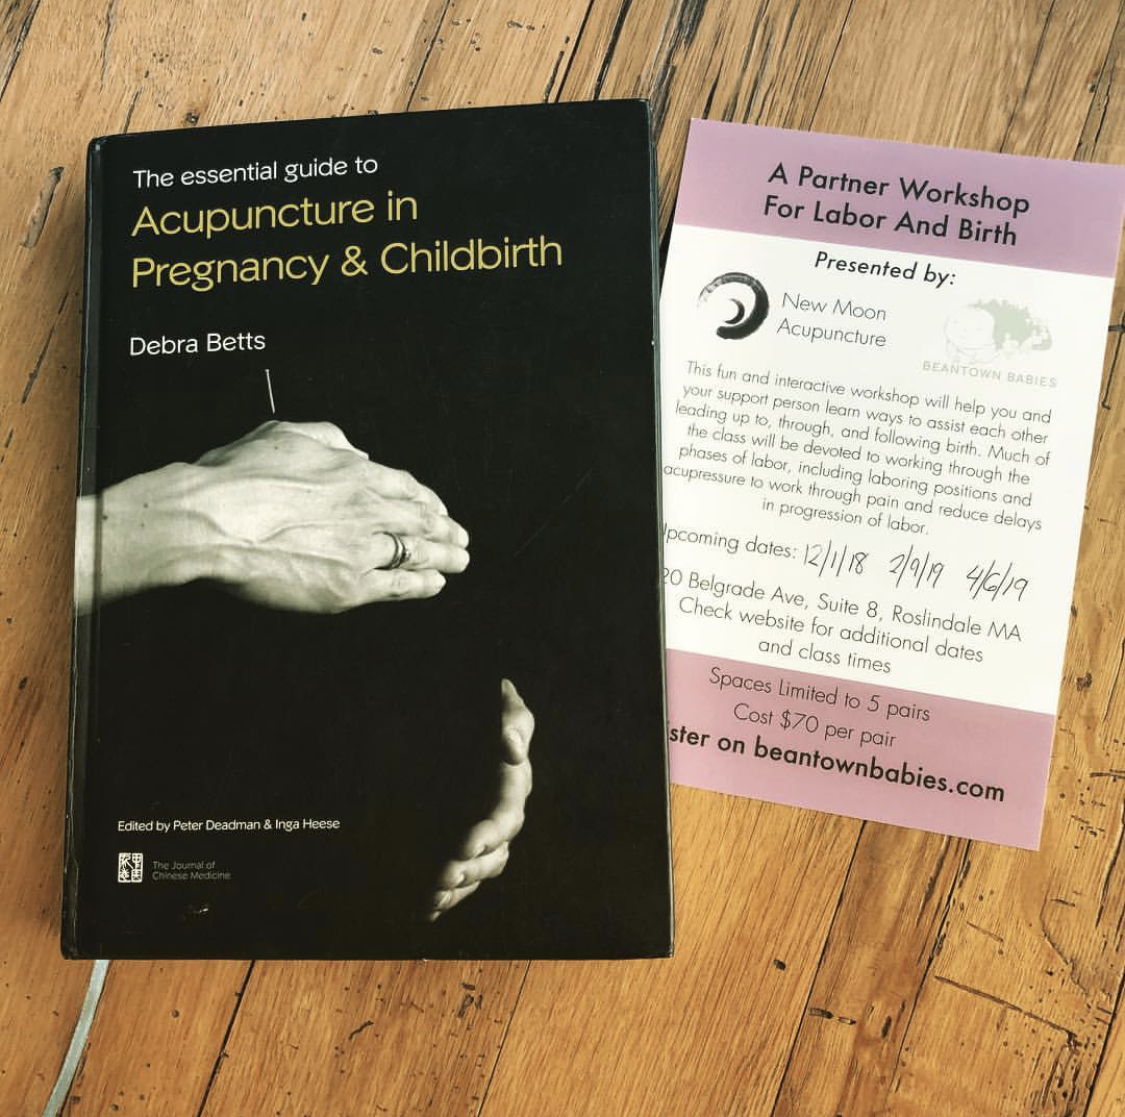 Betts' influential book on acupuncture in pregnancy and birth sits alongside Ece's flyer for upcoming partner workshops at Beantown Babies in Roslindale.